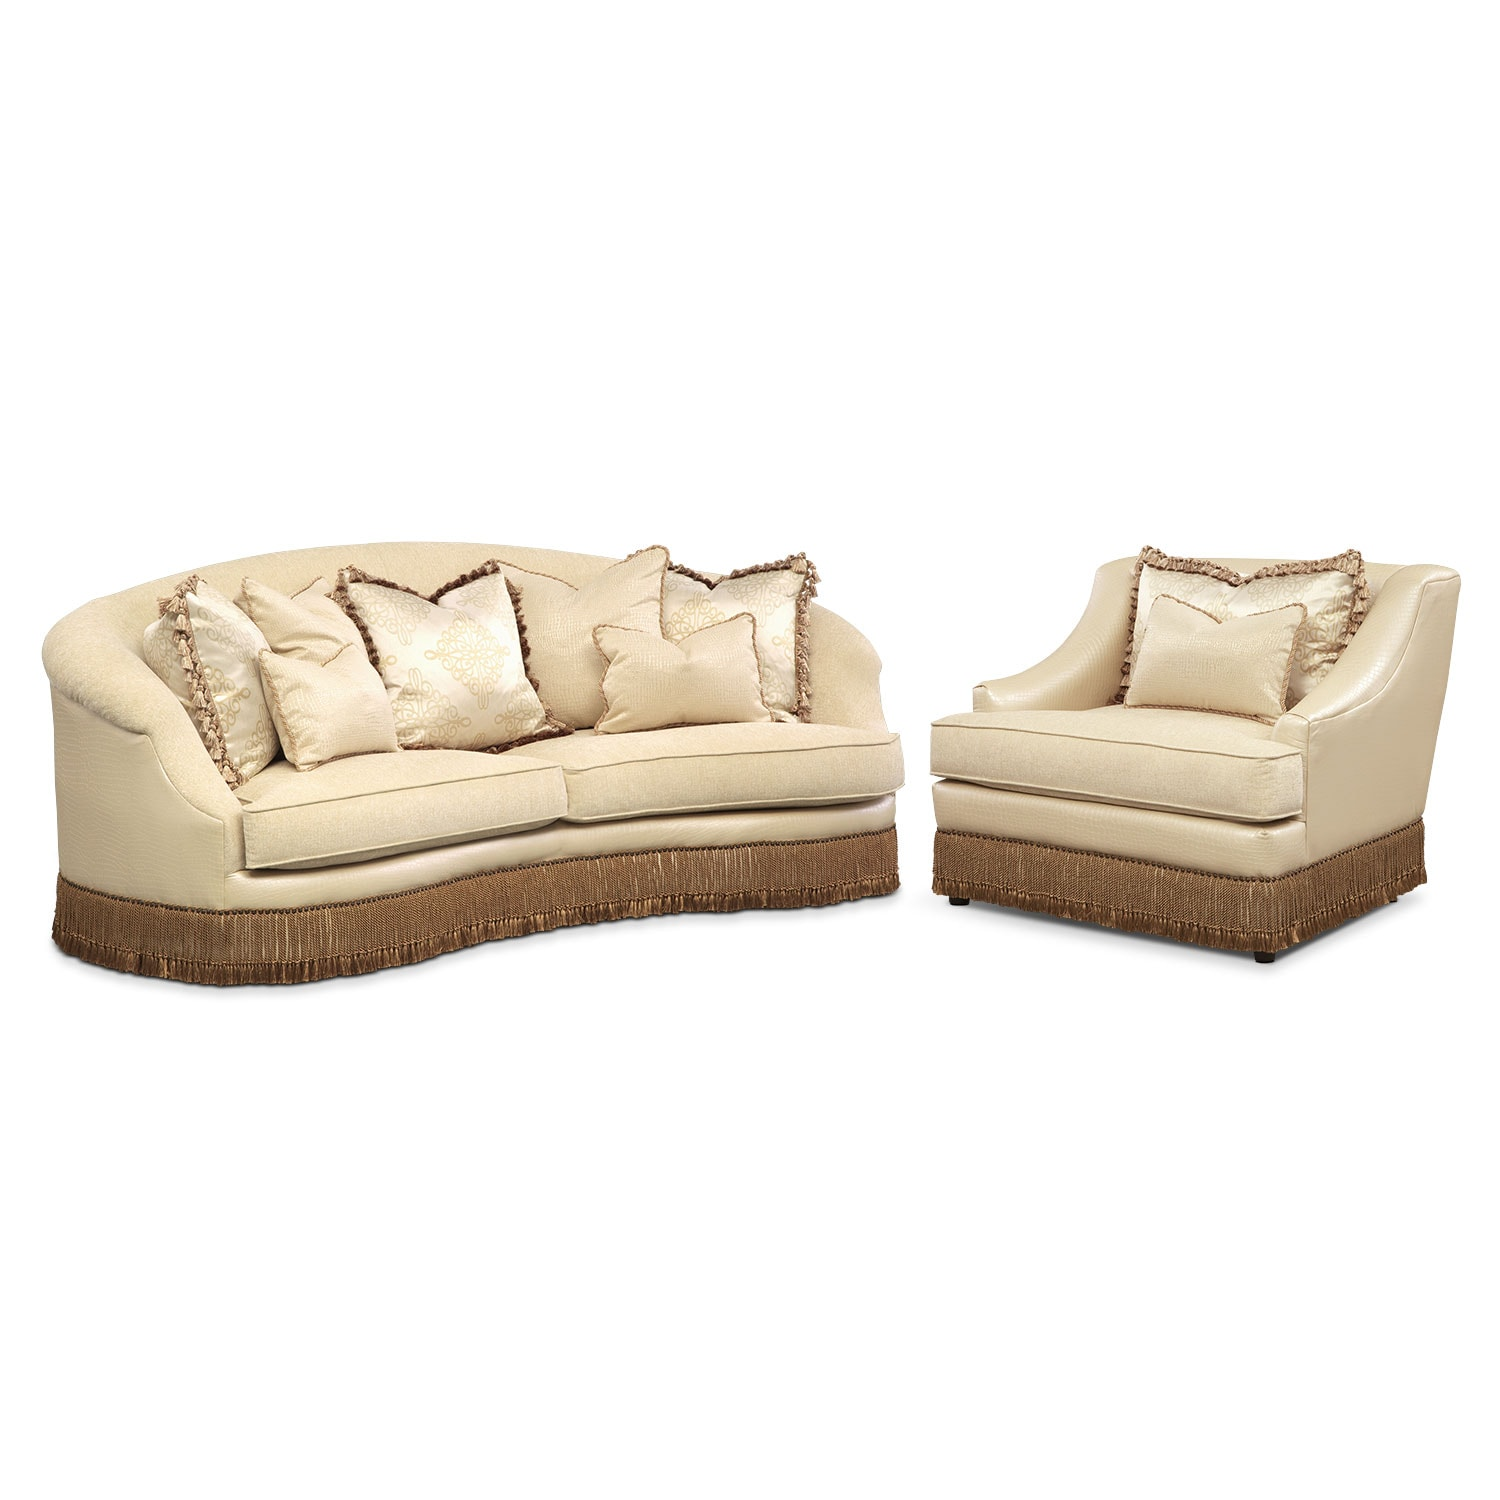 Living Room Furniture - Vivienne 2 Pc. Living Room w/Chair